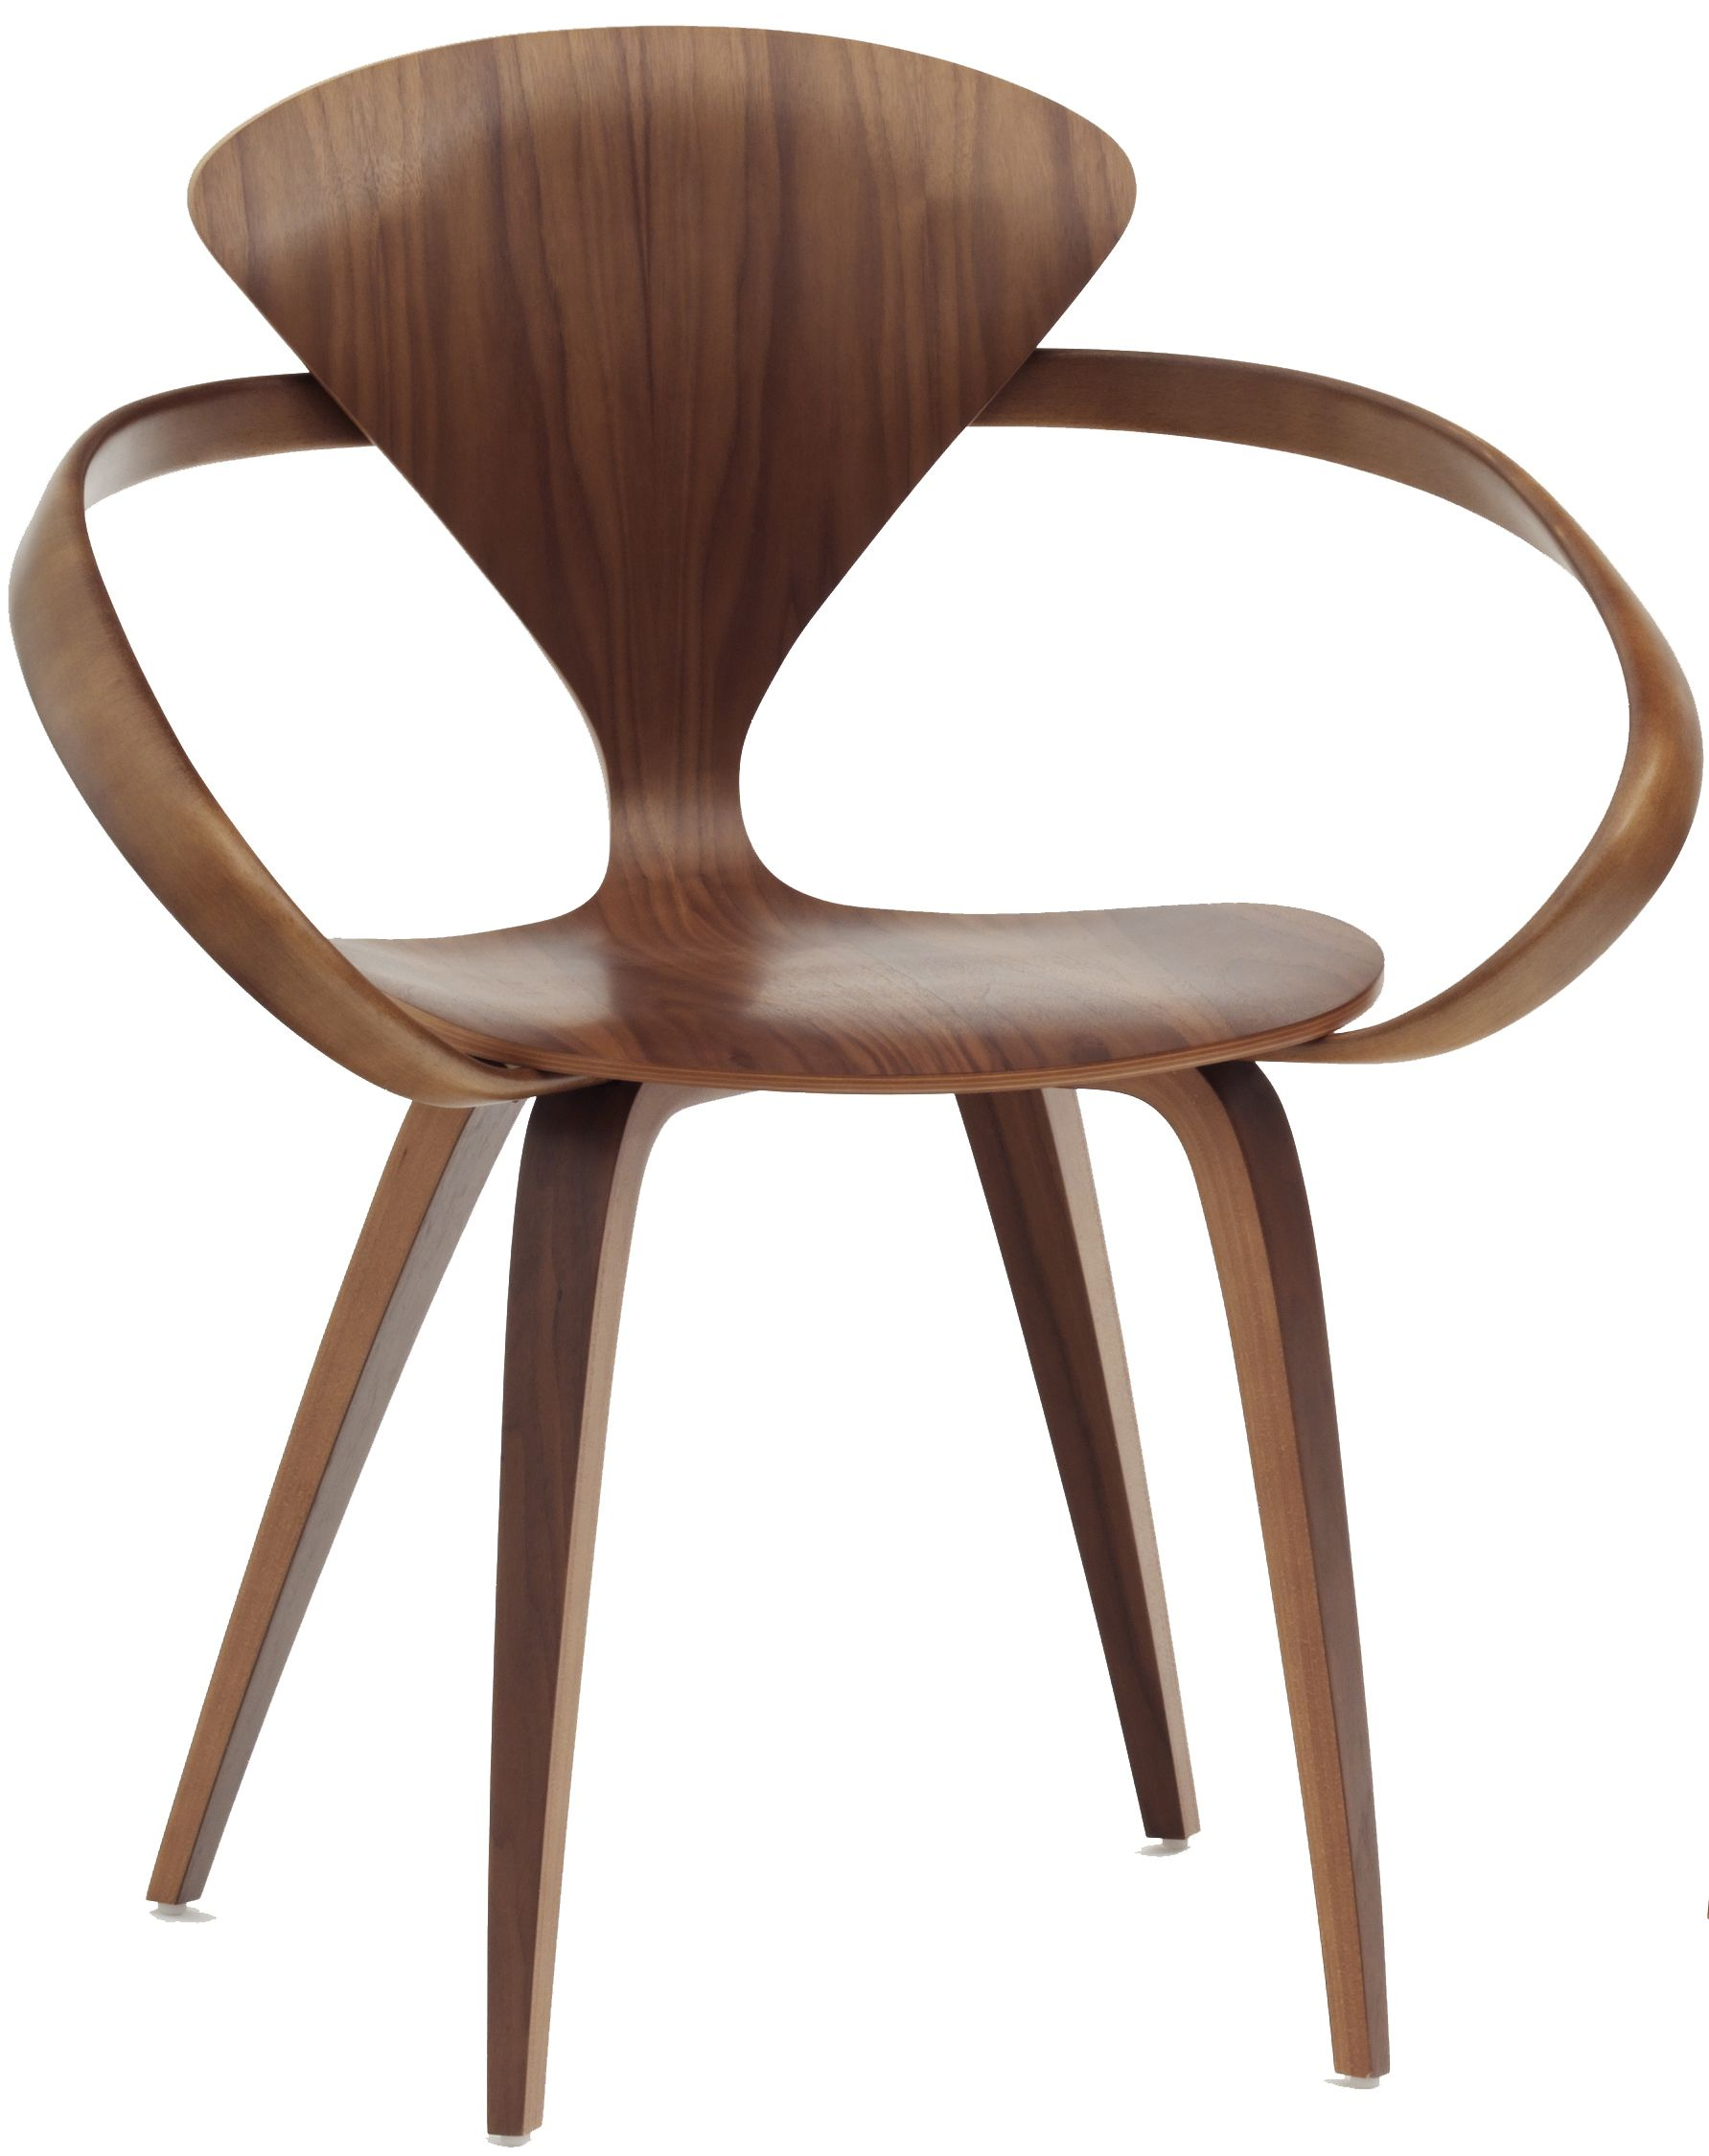 Cherner® Armchair | Dining chairs, Armchairs and Kitchens